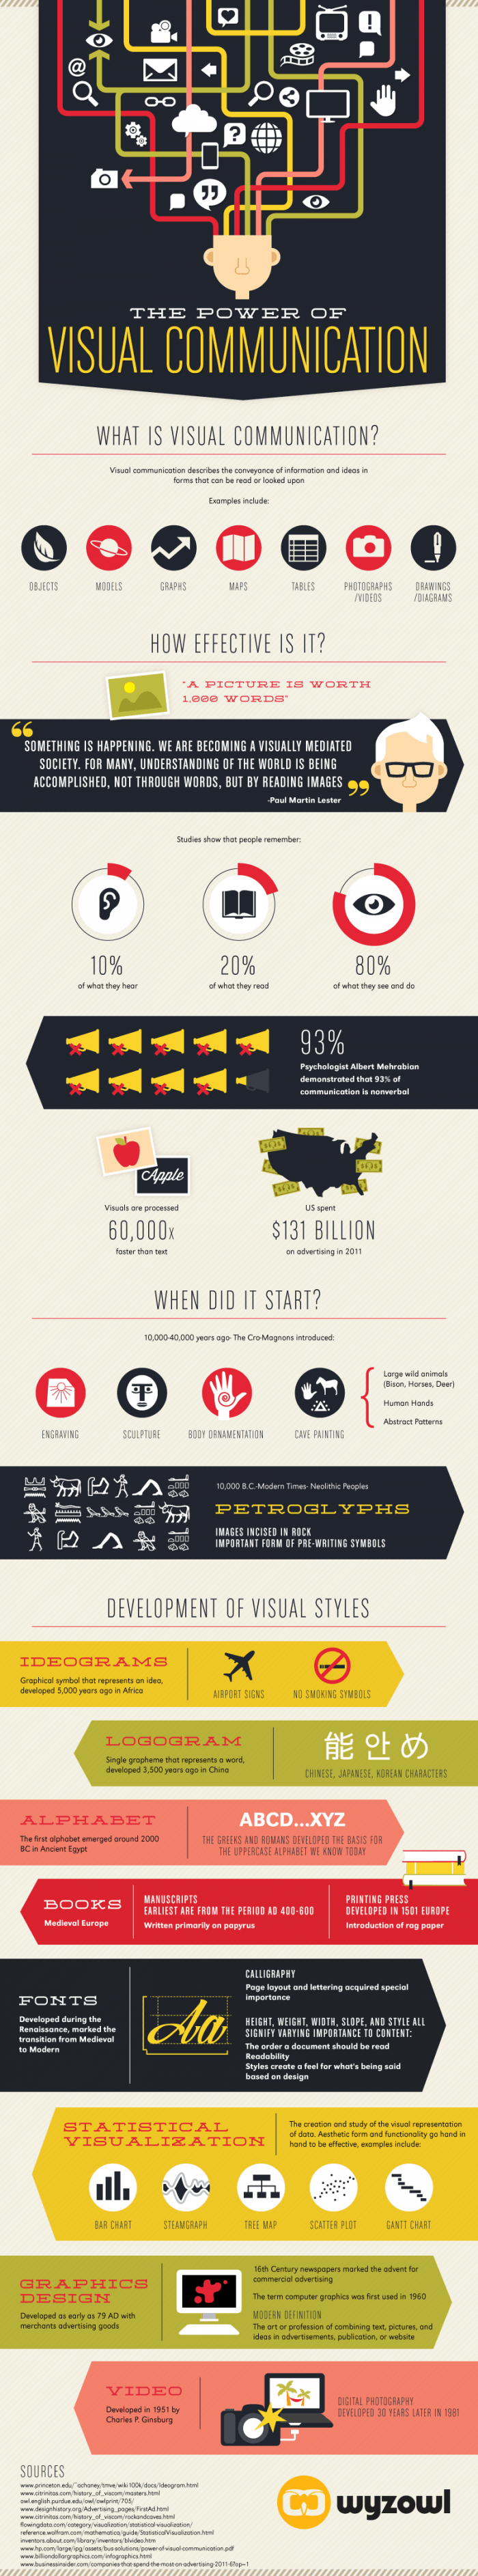 the-power-of-visual-communication-infographic